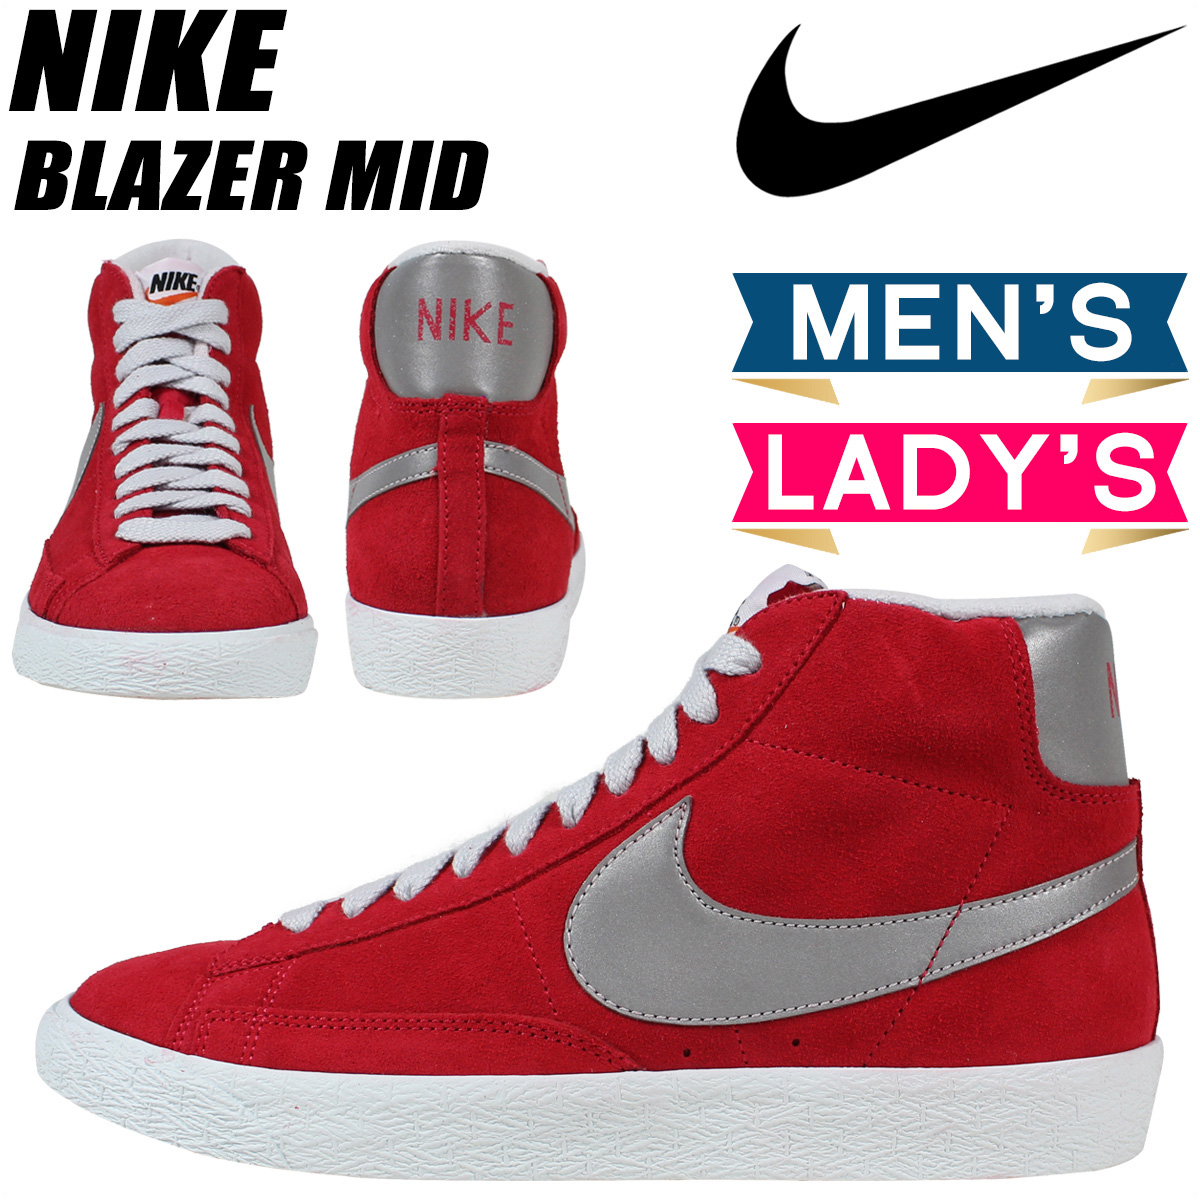 best website 27315 065eb NIKE Nike Blazer Blazer sneakers BLAZER MID PRM VNTG SUEDE 538282-603 men's  women's shoes Red